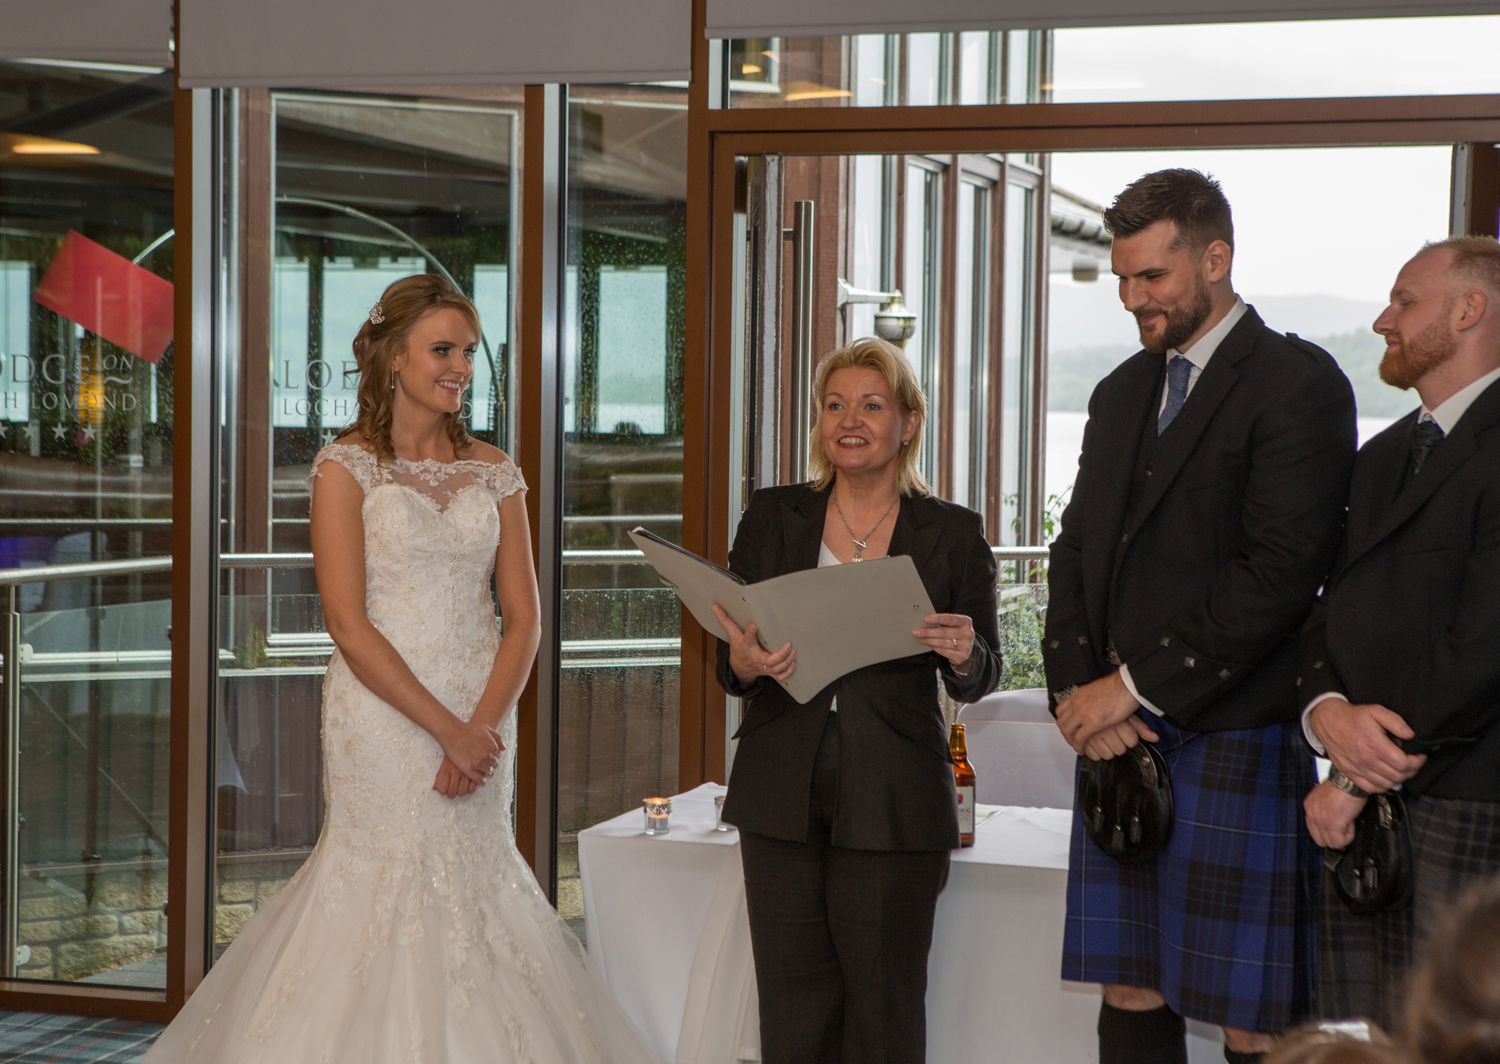 Wedding-photography-Lodge-on-The-Loch-006